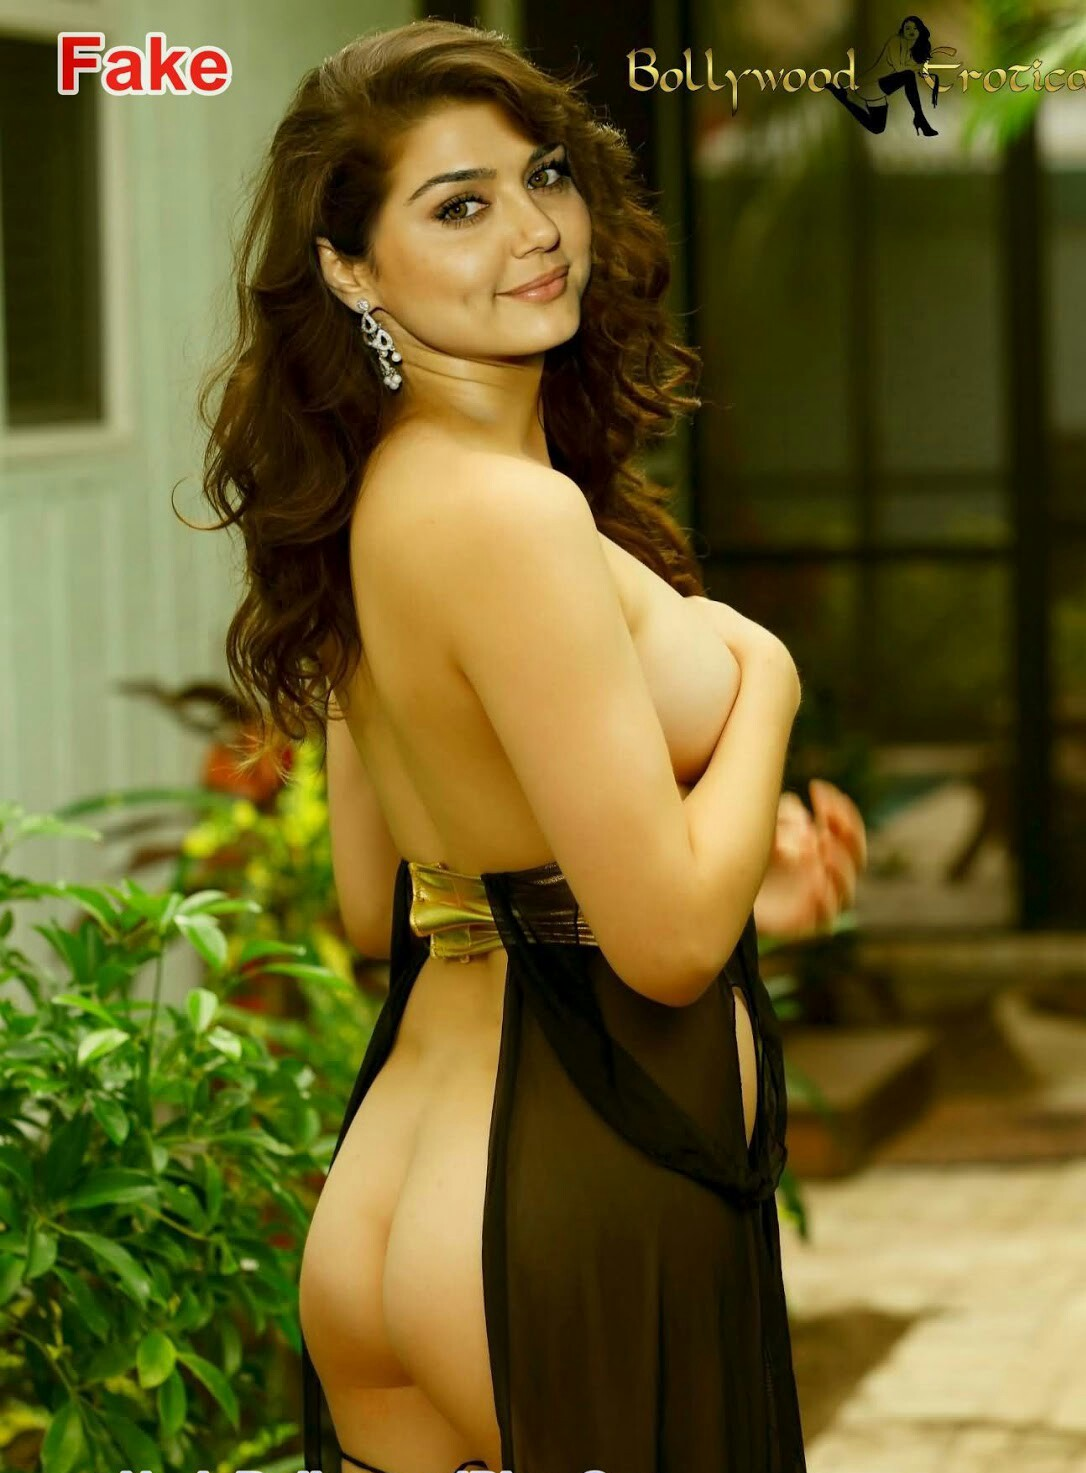 preity-zinta-naked-images-fully-clothed-to-completely-nude-strip